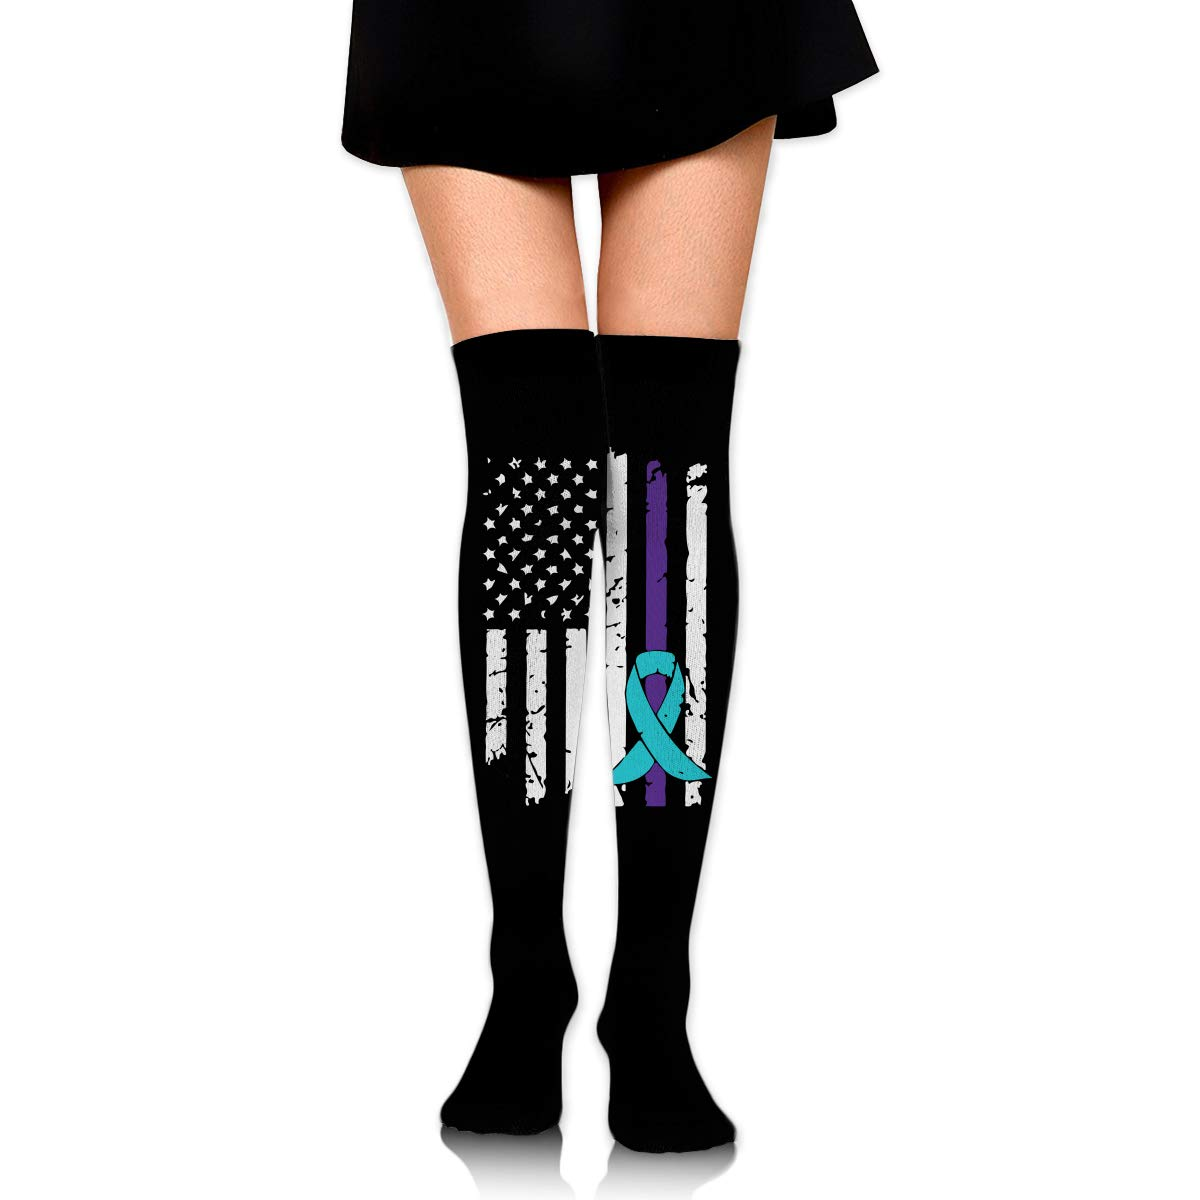 One Size Girls Womens Suicide Prevention Awareness Flag Over Knee Thigh High Stockings Fashion Socks